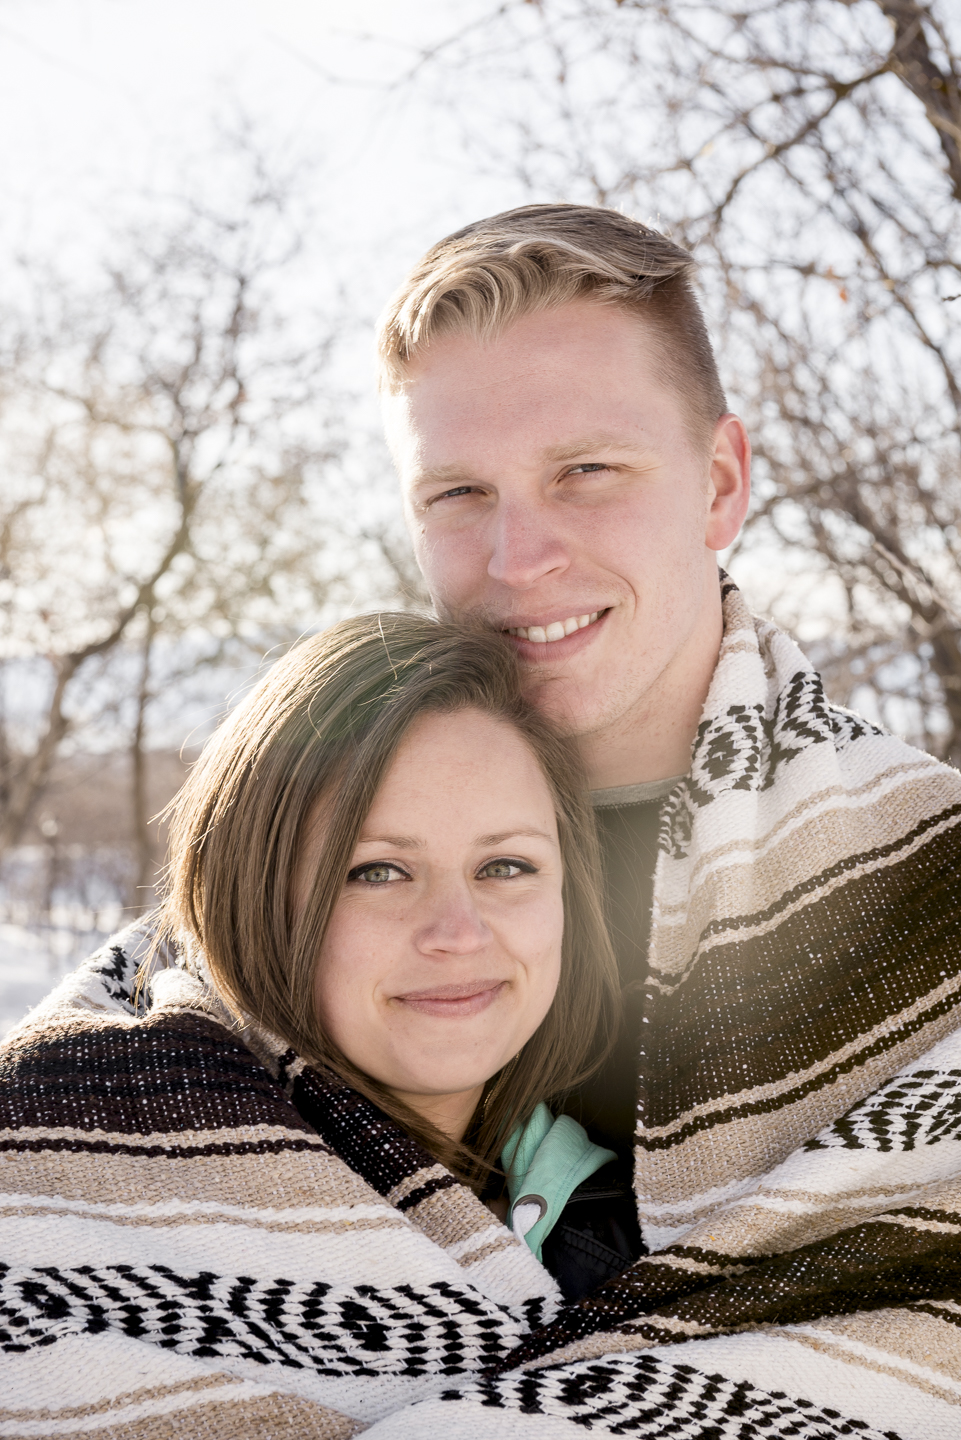 savage_couple_portrait_snow_pine_utah_Christin-10.jpg